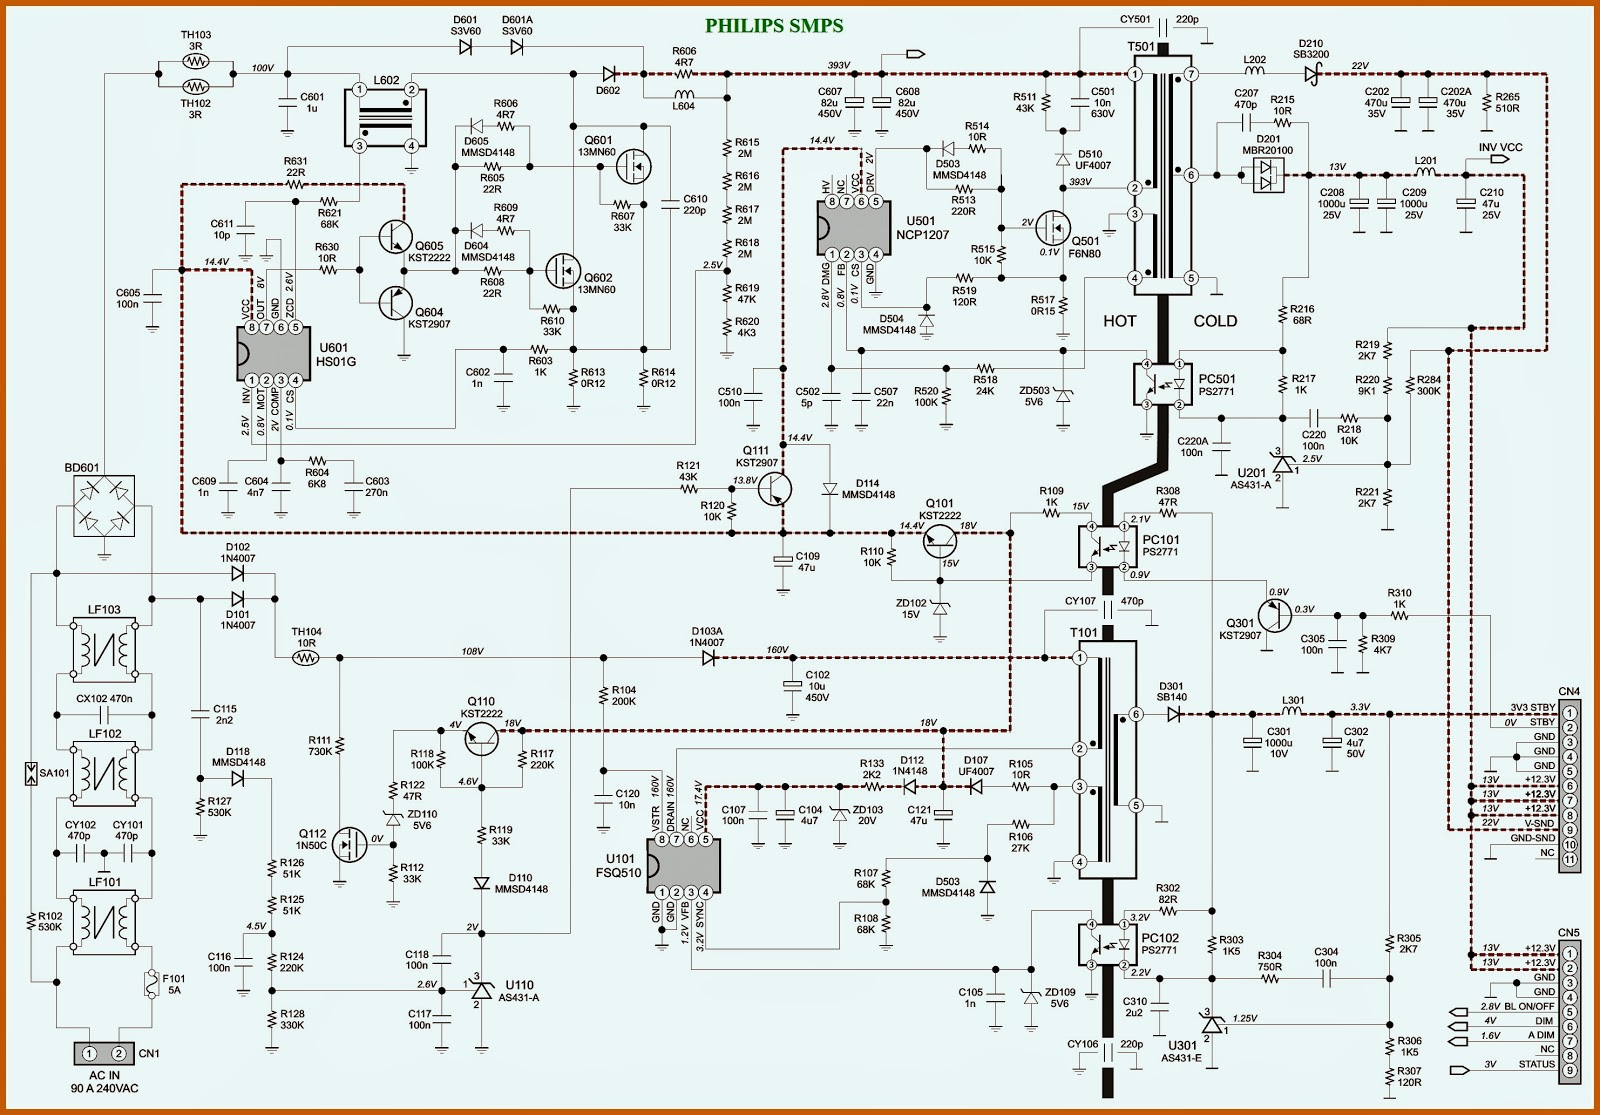 microwave oven wiring diagram for model jvm1440bh01 trusted wiring rh soulmatestyle co Kenmore Microwave Oven Combination Microwave Oven Fuse Location